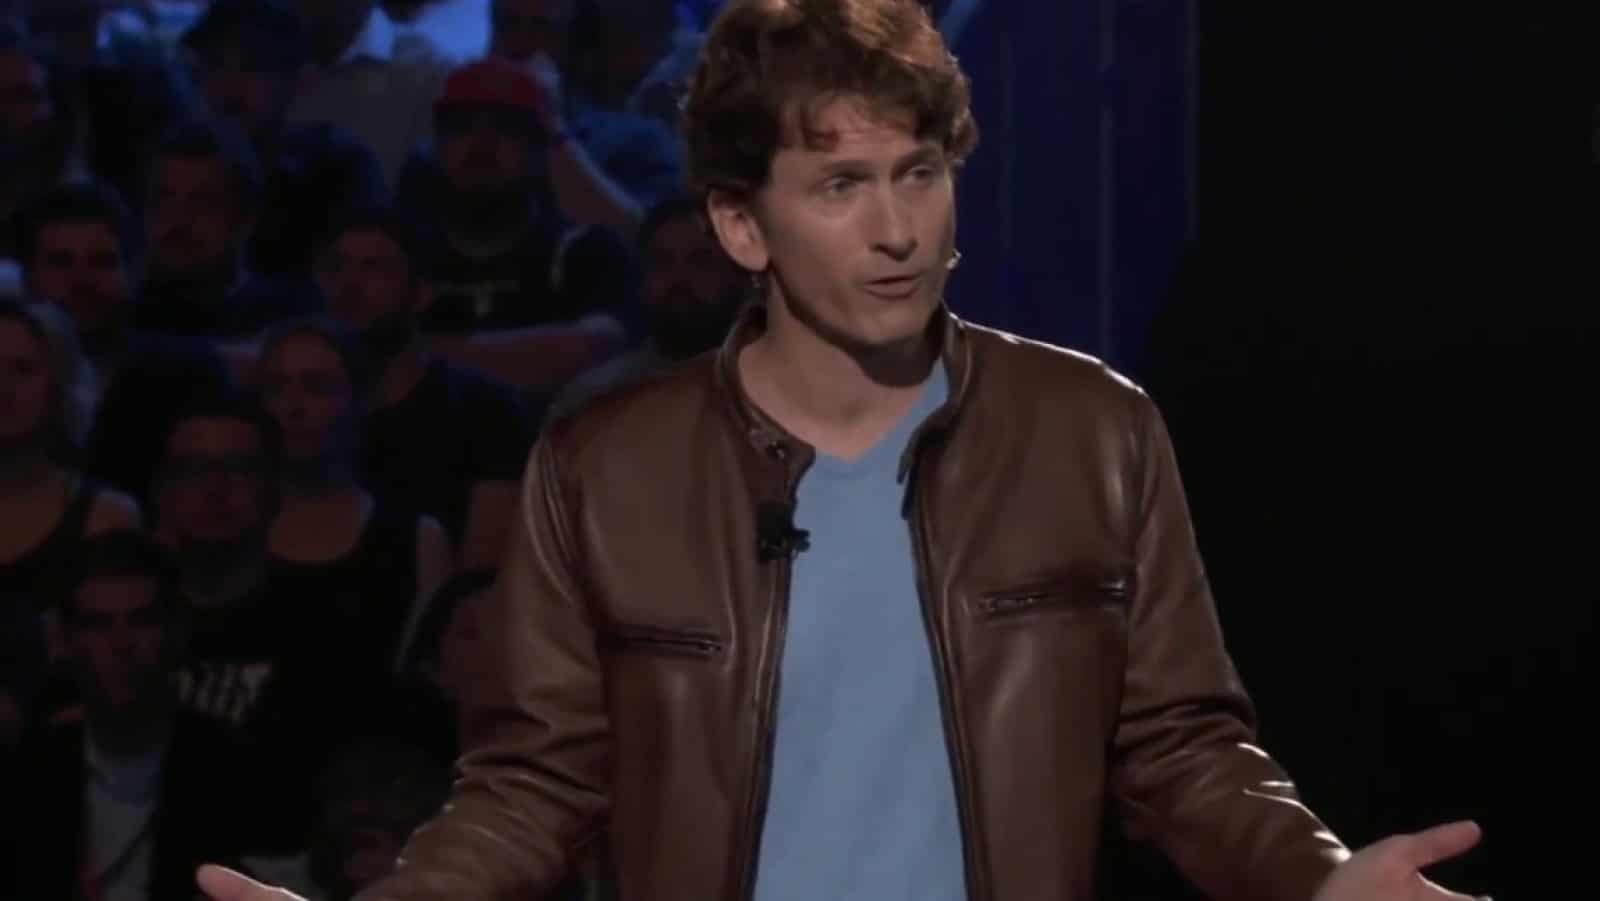 todd howard from bethesda stood on stage